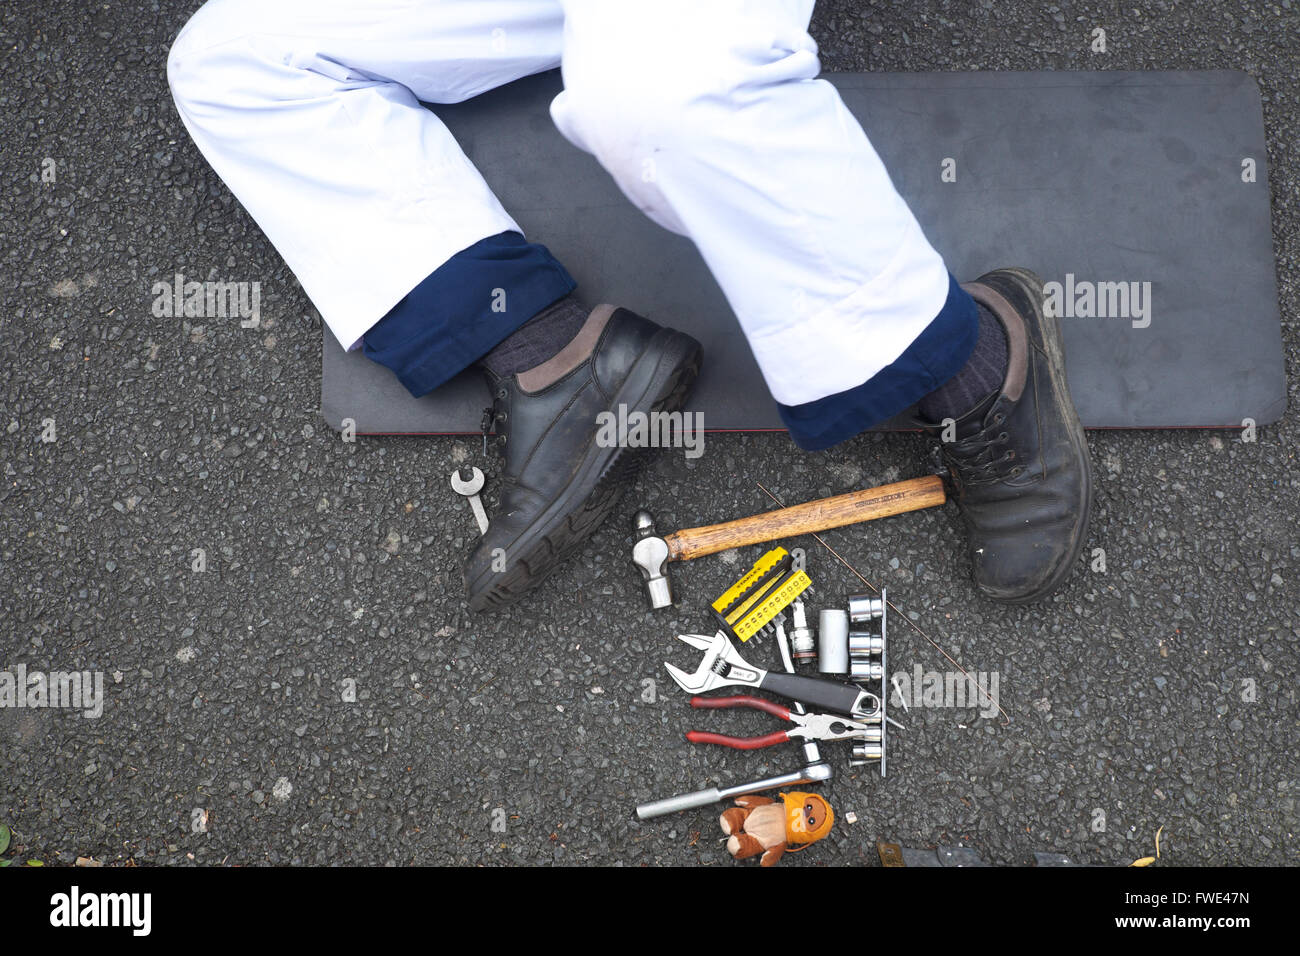 Car mechanic with his legs sticking out and tools at his feet - Stock Image